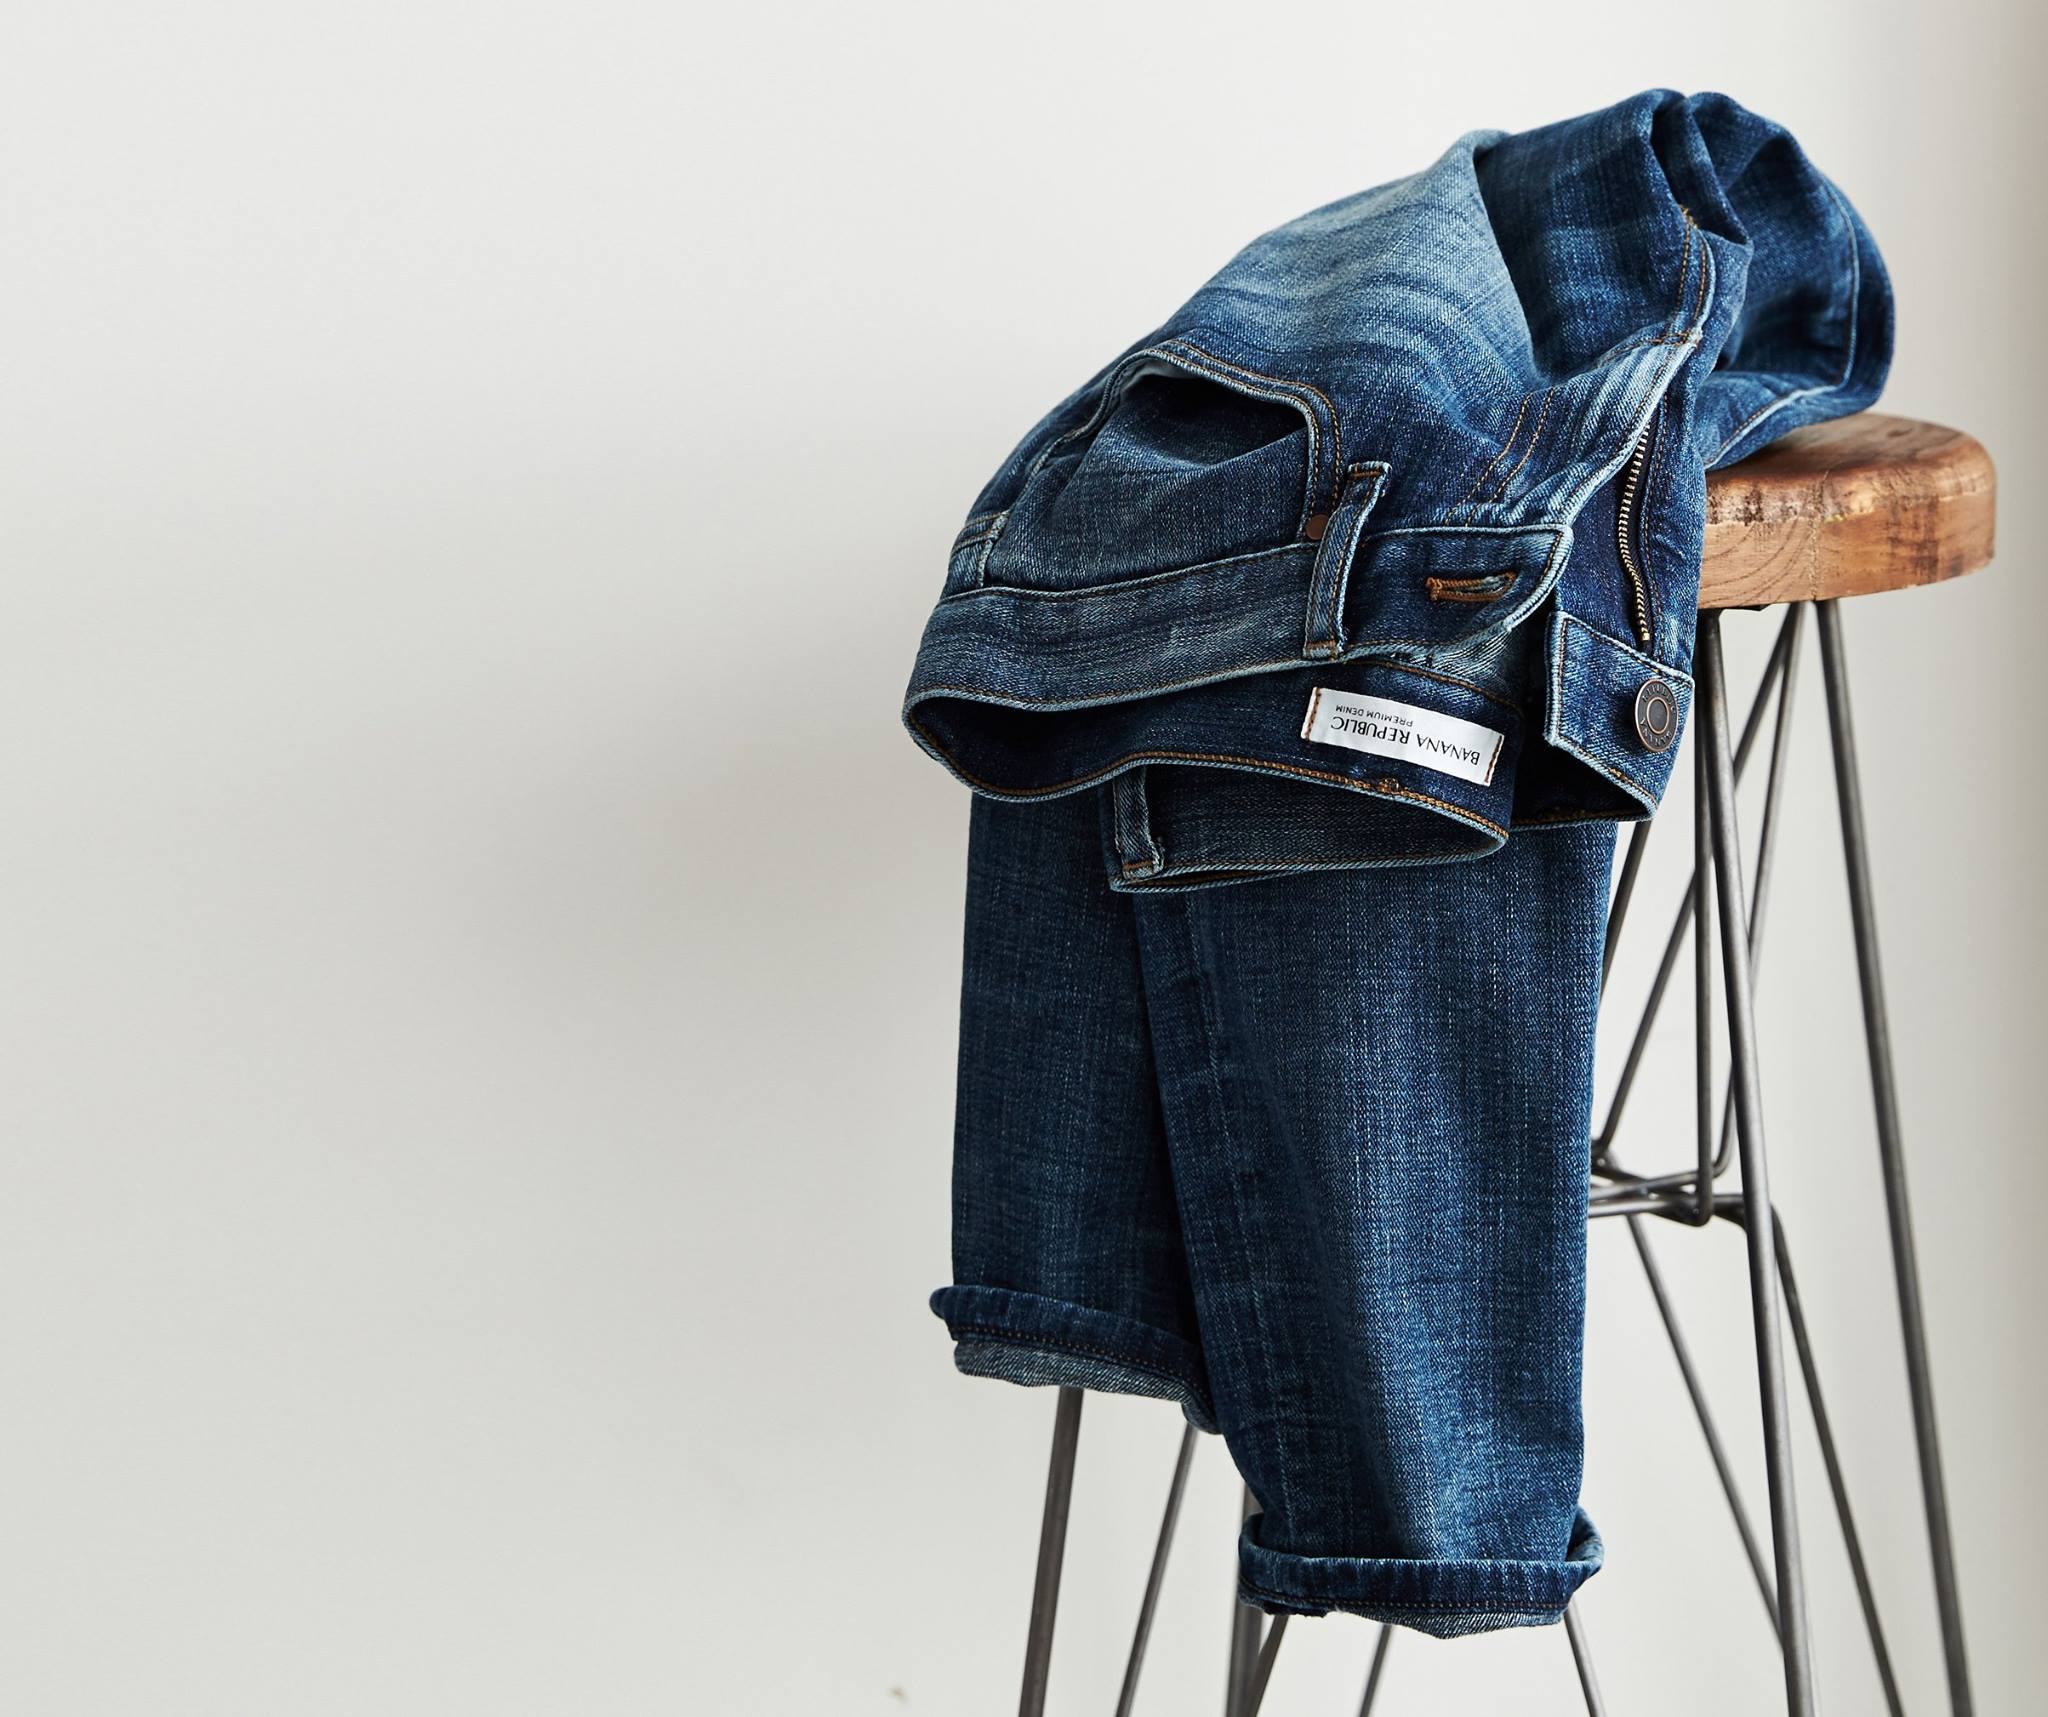 22 college student discounts & freebies – jeans on a stool